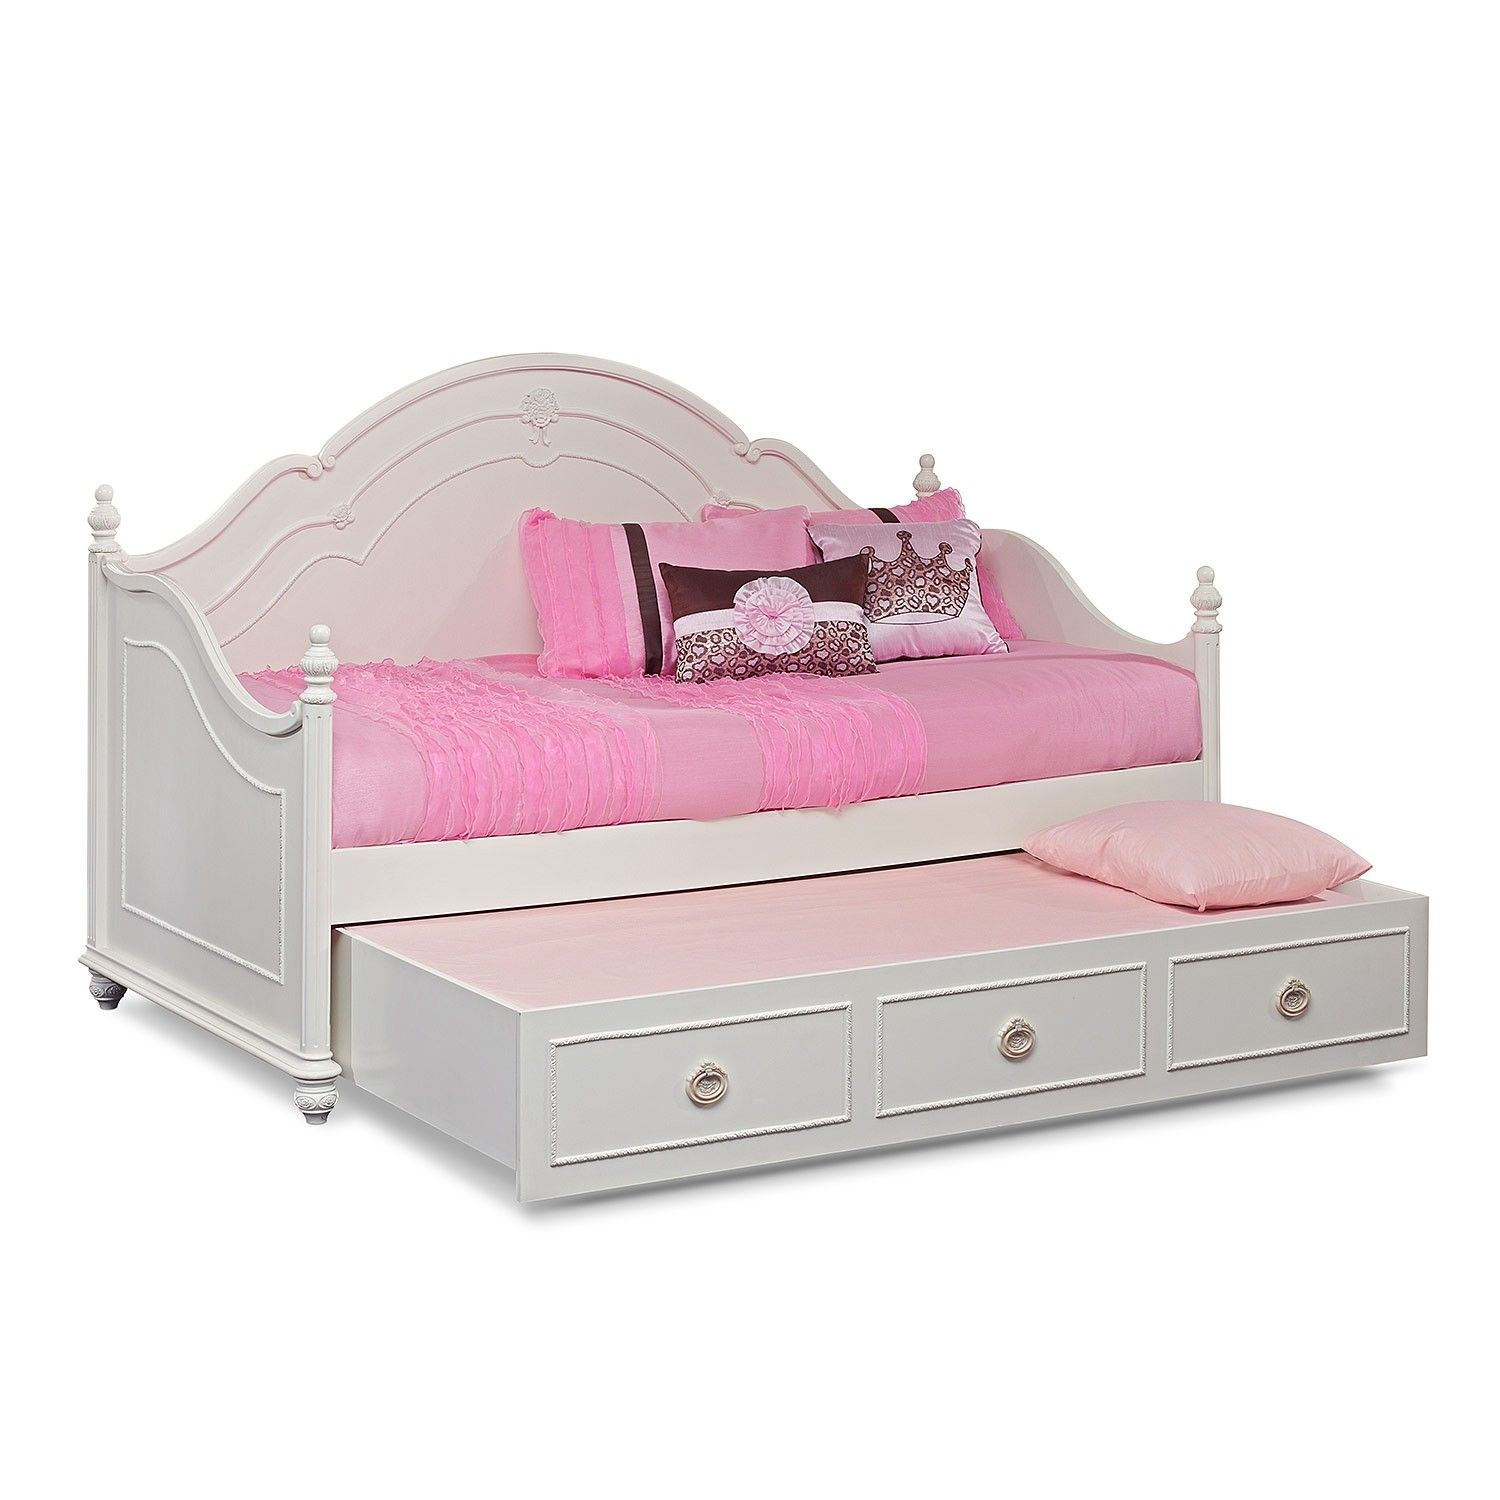 - Bedroom. Curved White Wooden Daybed And Sliding Bed Having Pink